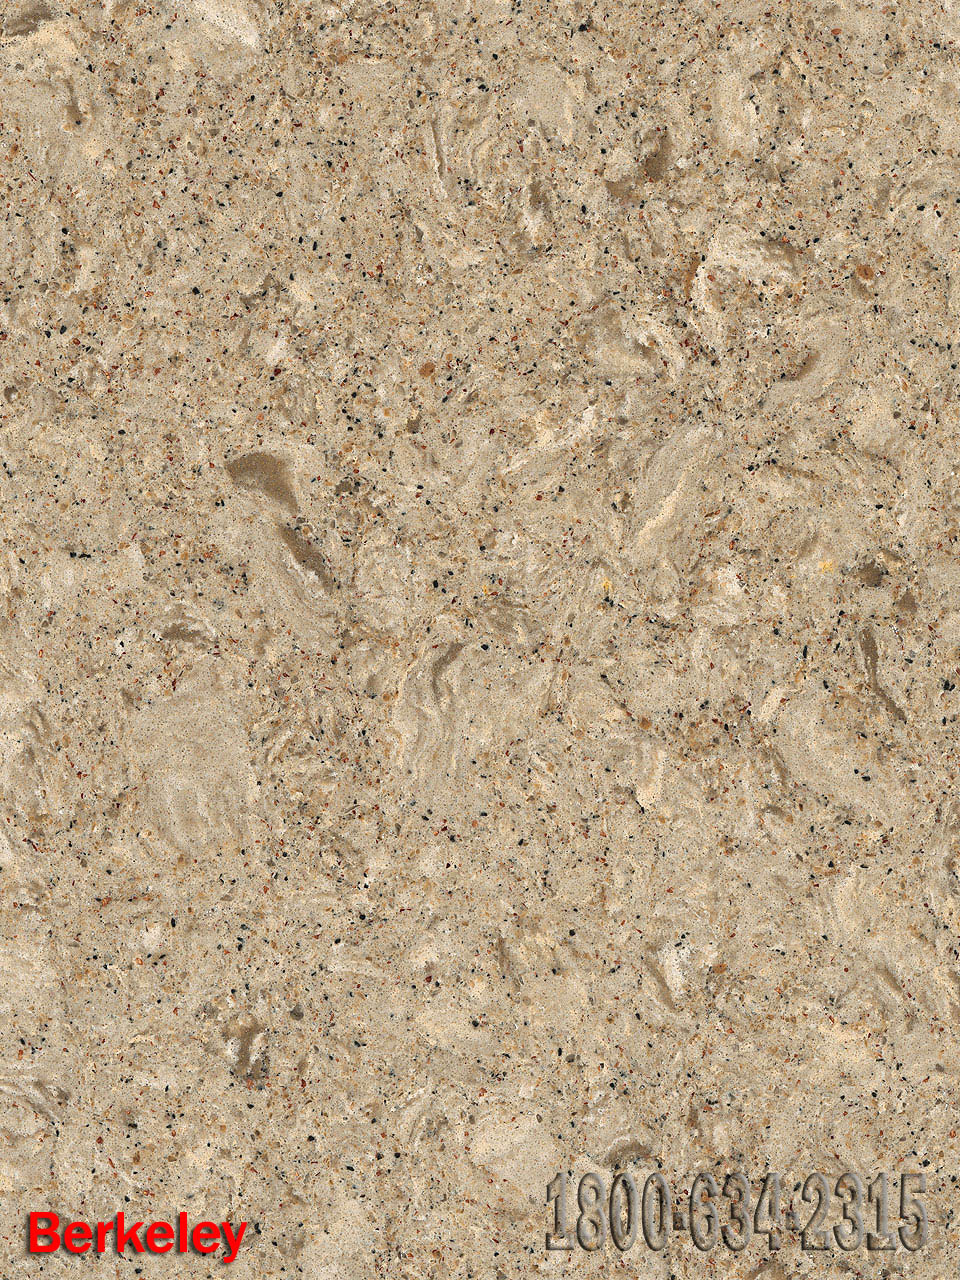 Quartz Countertop Colors : Cambria quartz countertop colors mega marble